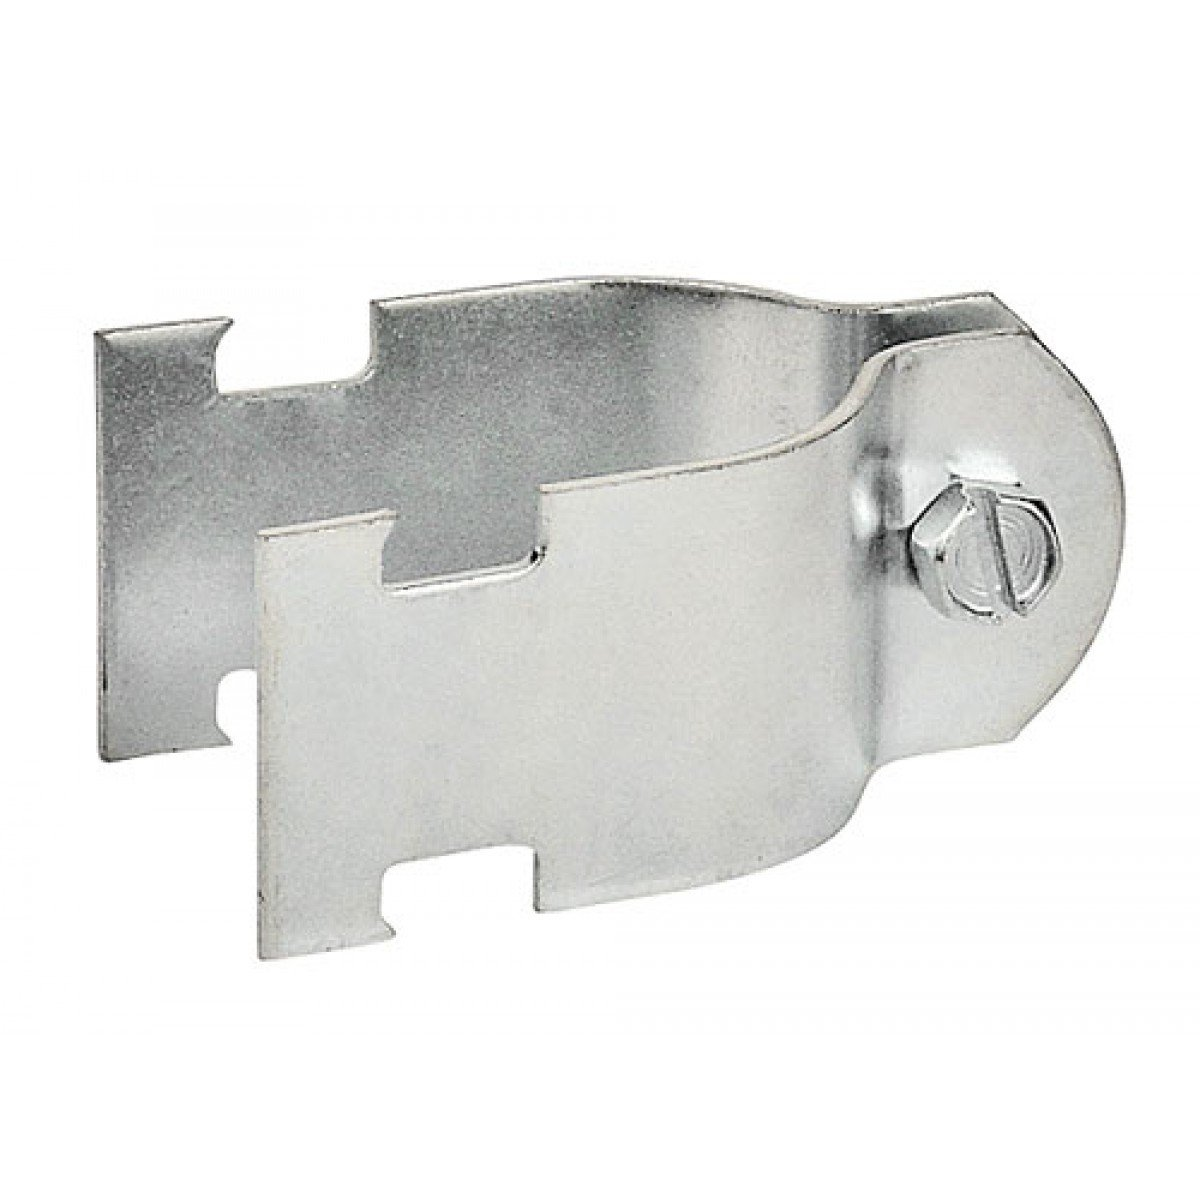 1 Pc, 6 In. Two Piece Rigid Conduit 316 Stainless Steel Strut Clamp to Secure Conduit In Overhead Strut Channel Or Wall Mount Application